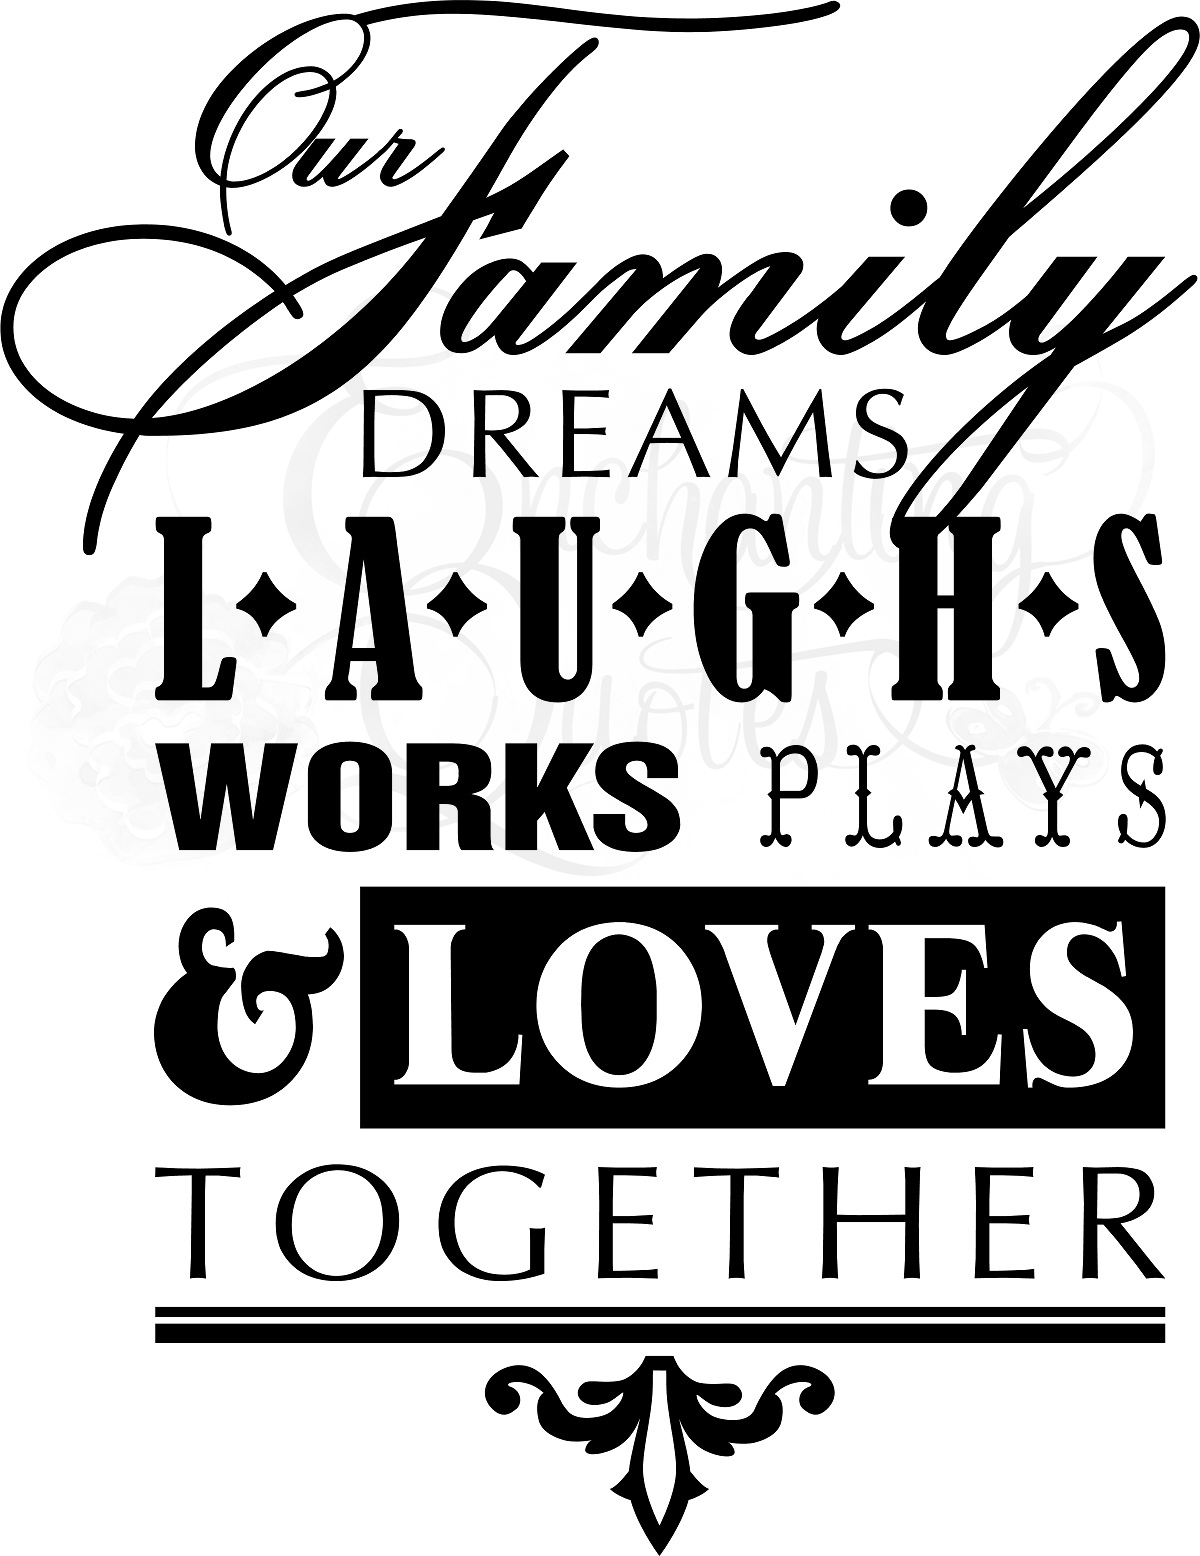 Quotes About Family Love Family Quotes  Vinyl Wall Quotes  Our Family Dreams